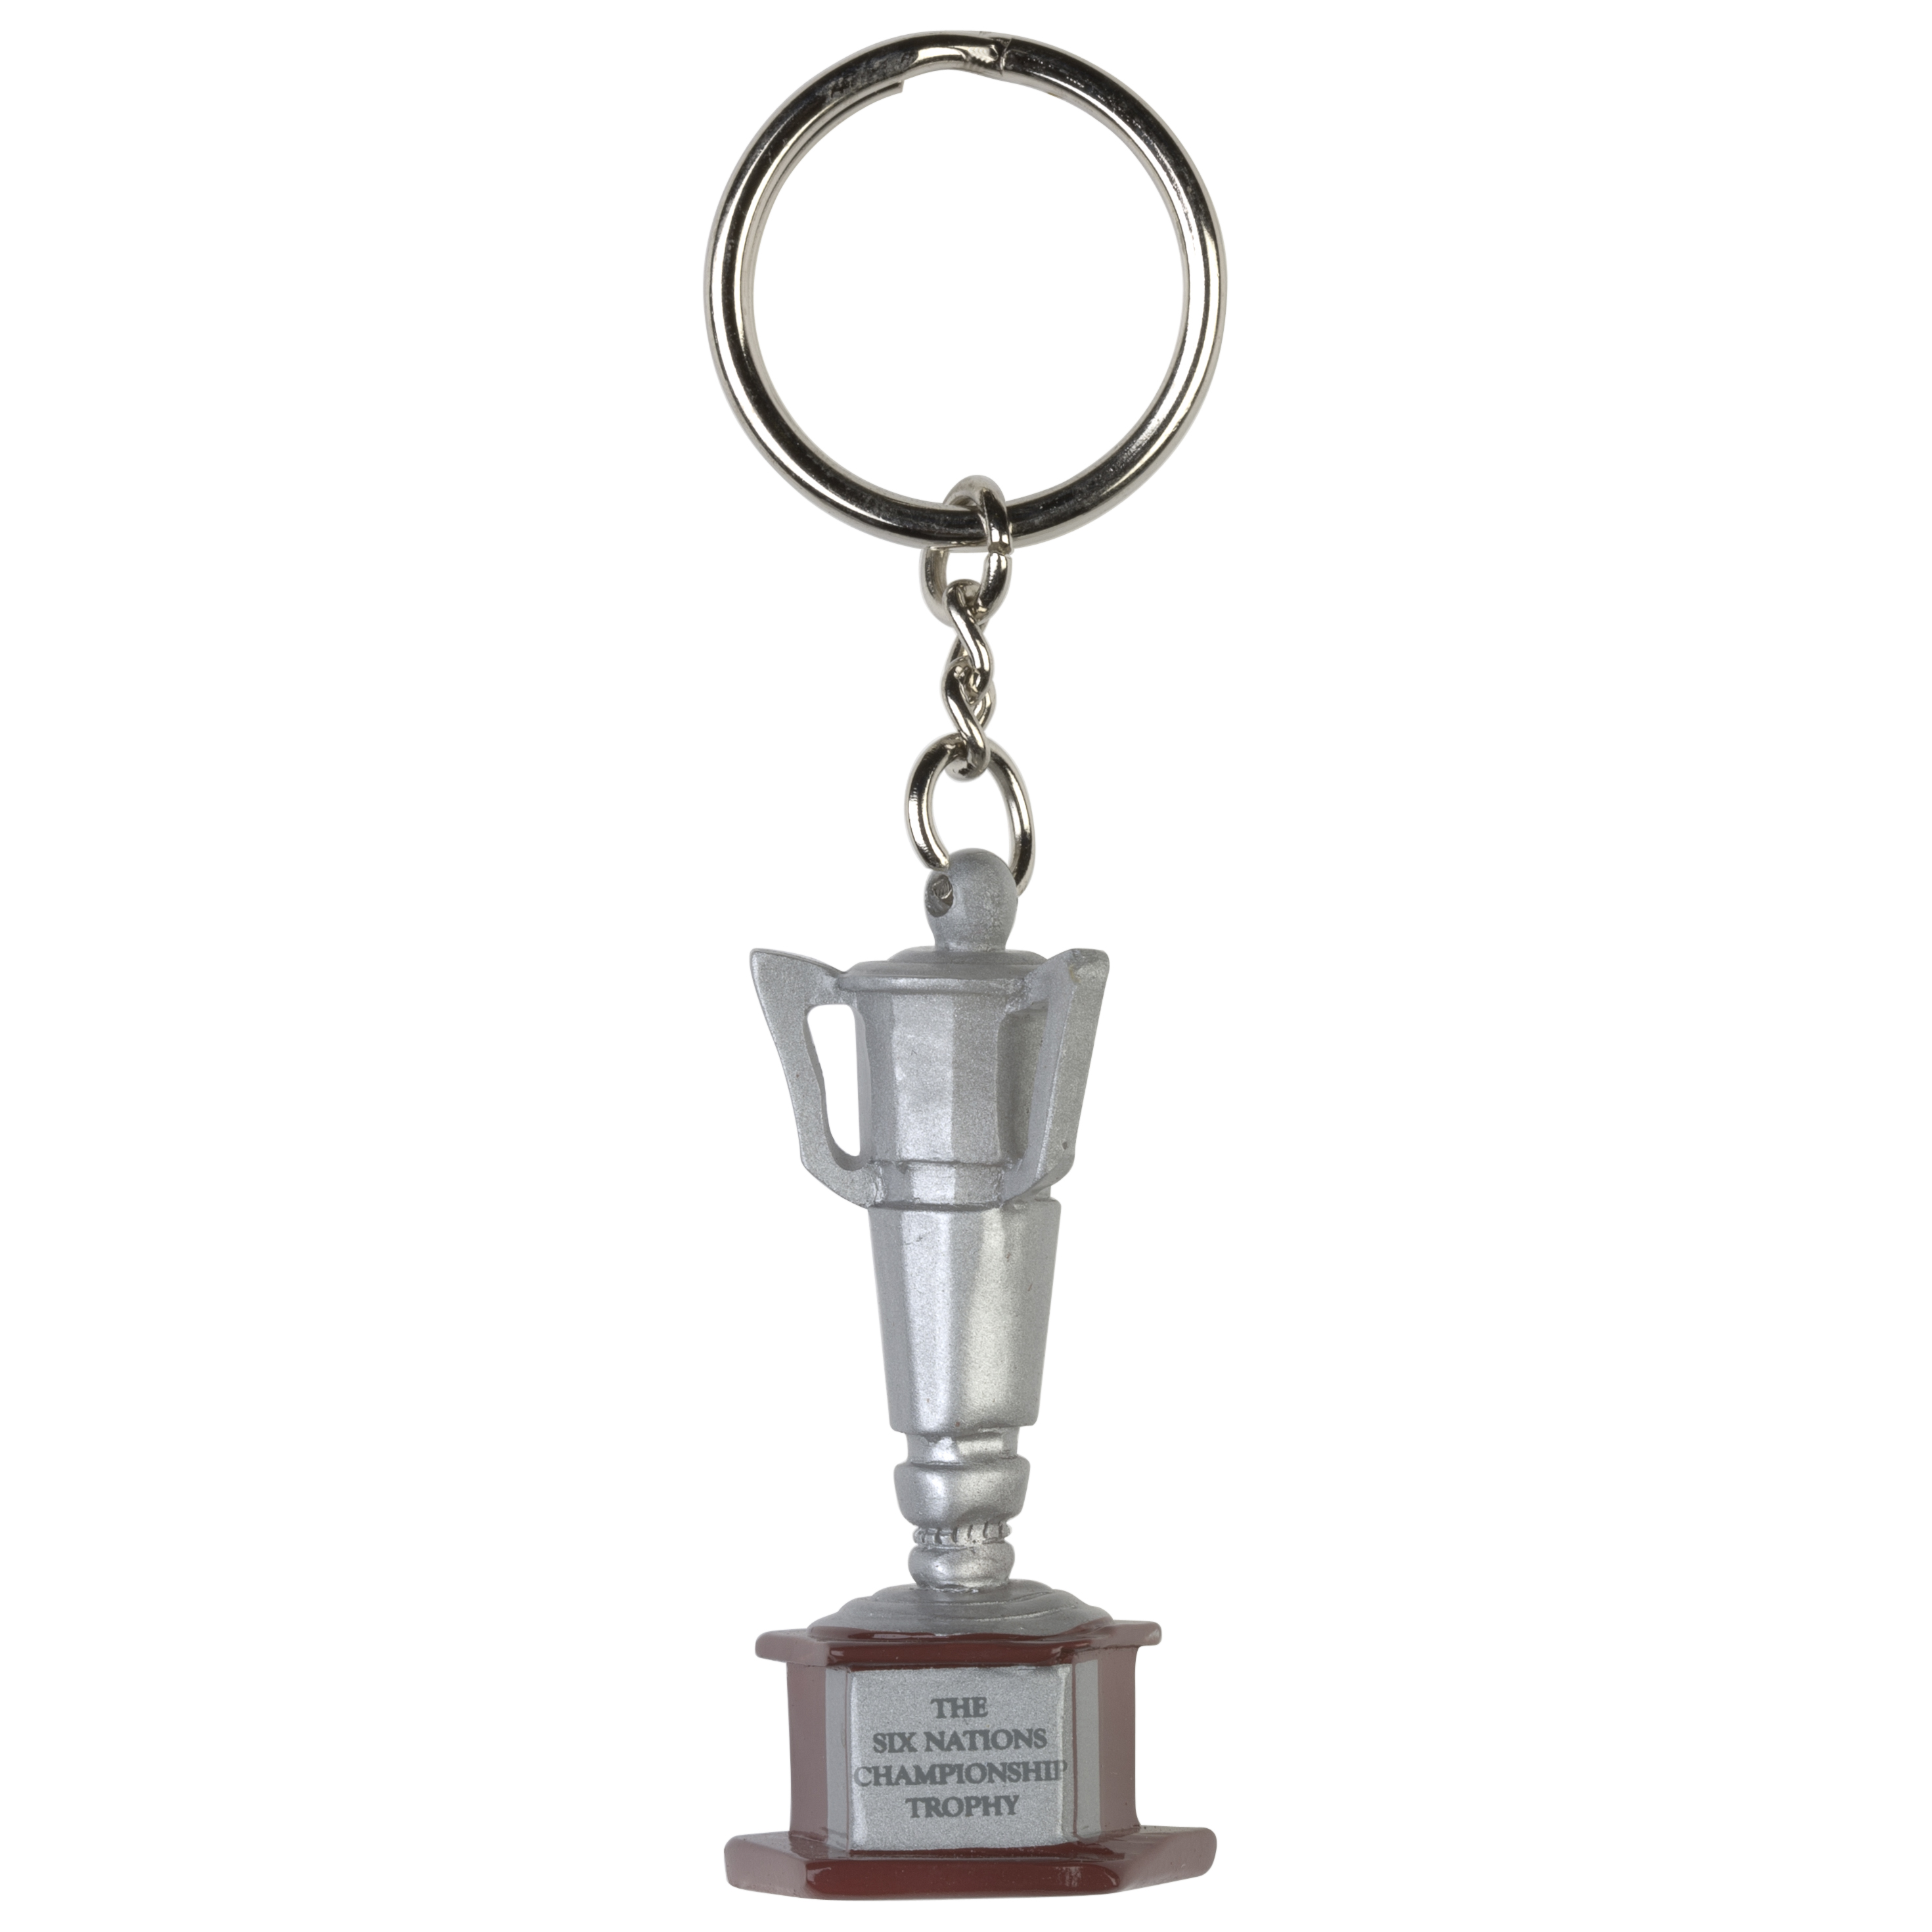 RBS 6 Nations Championship Trophy Keyring